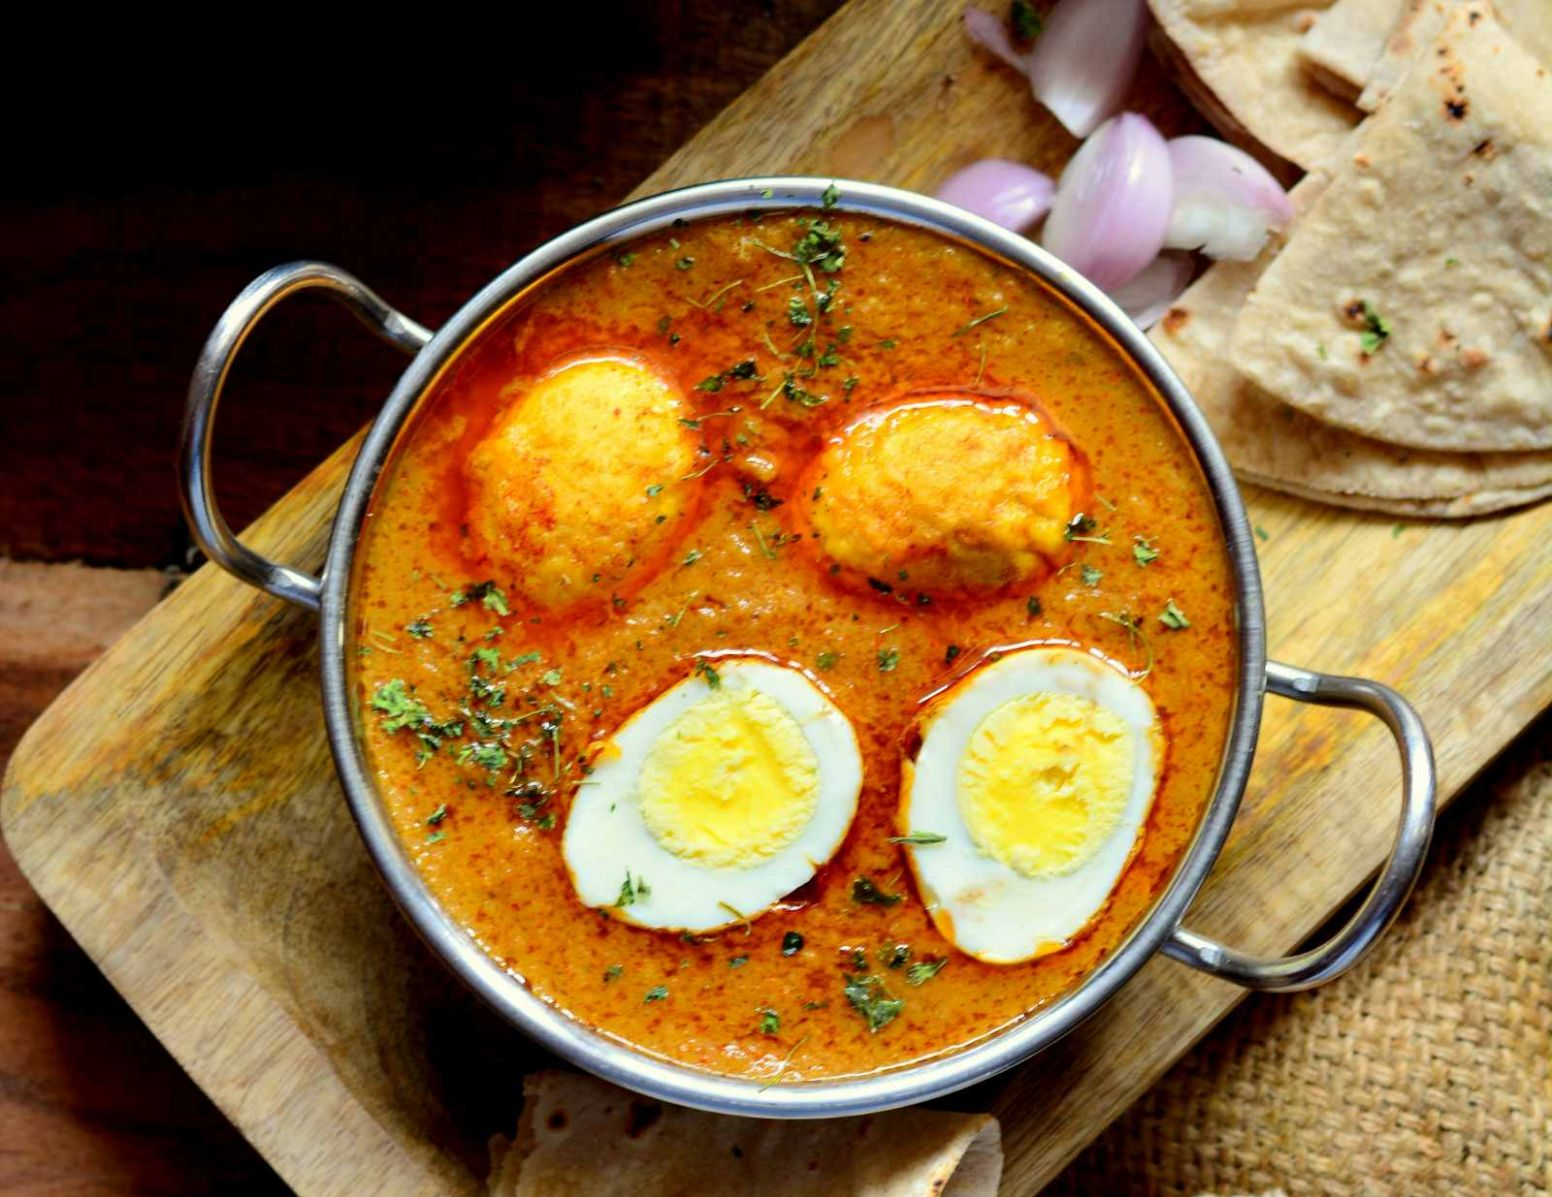 Dimer Malai Curry Recipe (Bengali Style Egg Curry In Coconut Milk) - Dinner Recipes With Milk